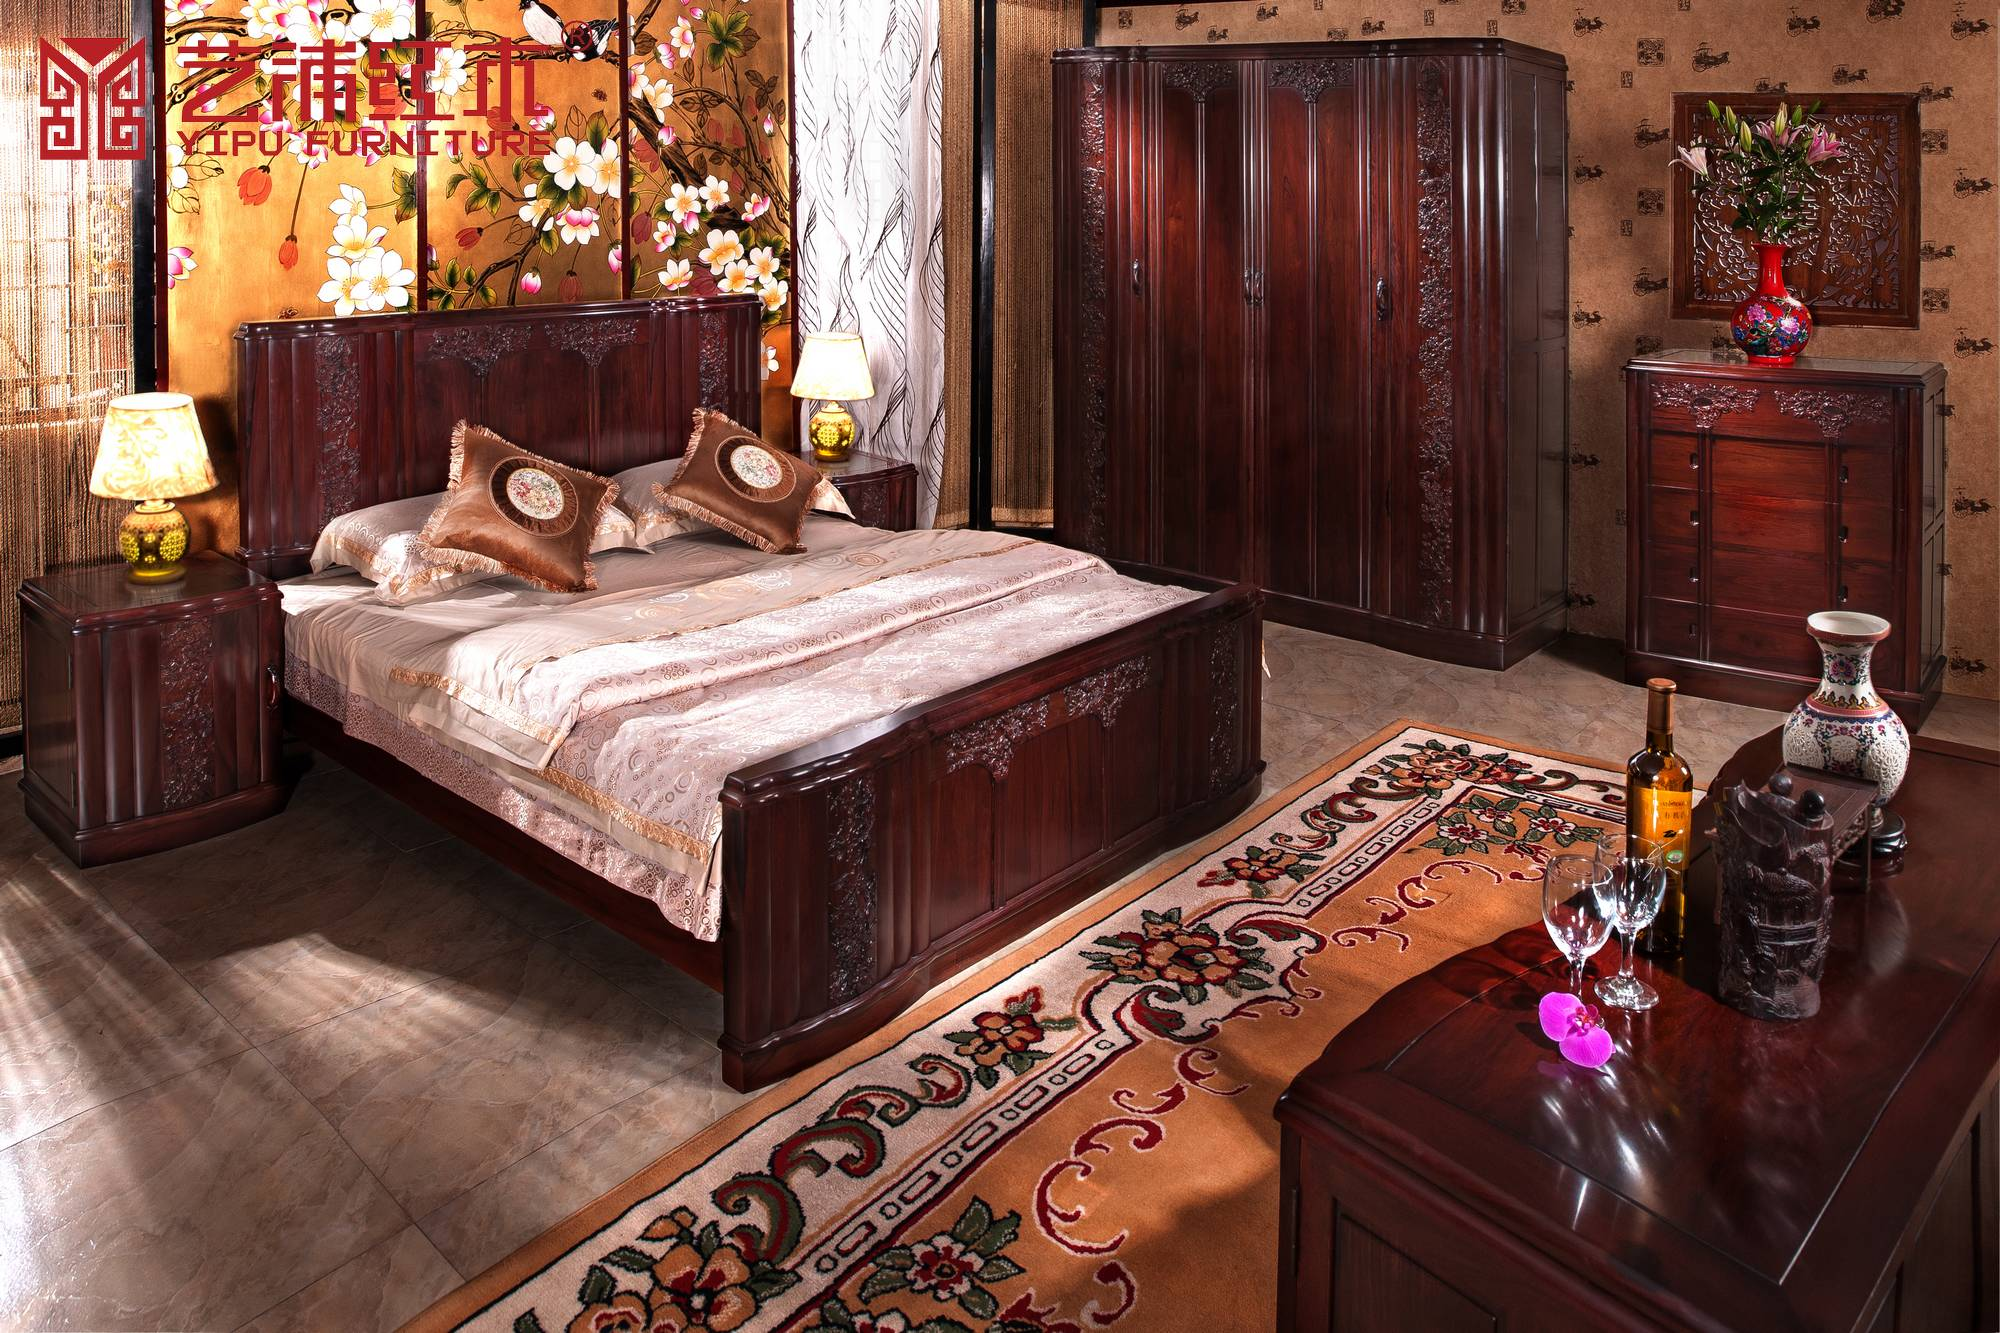 Get Ations Pu Yi Gany Furniture Rosewood Fairview Love Apartment